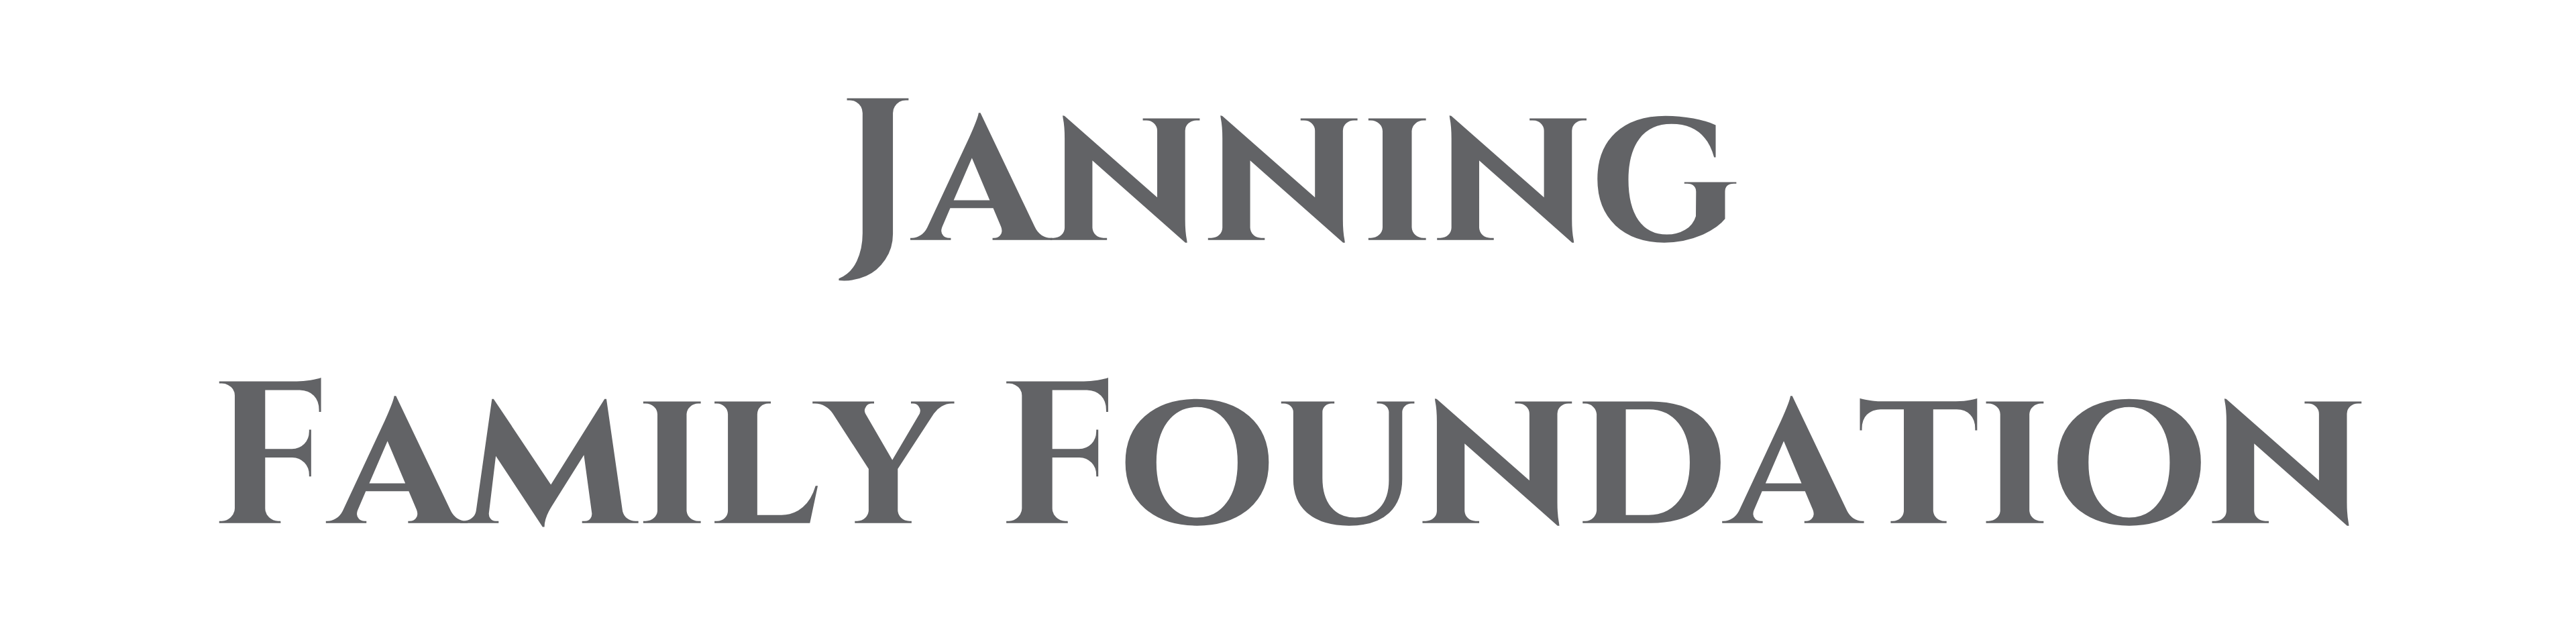 https://www.jadallas.org/wp-content/uploads/2021/09/Janning-Family-Foundation.png